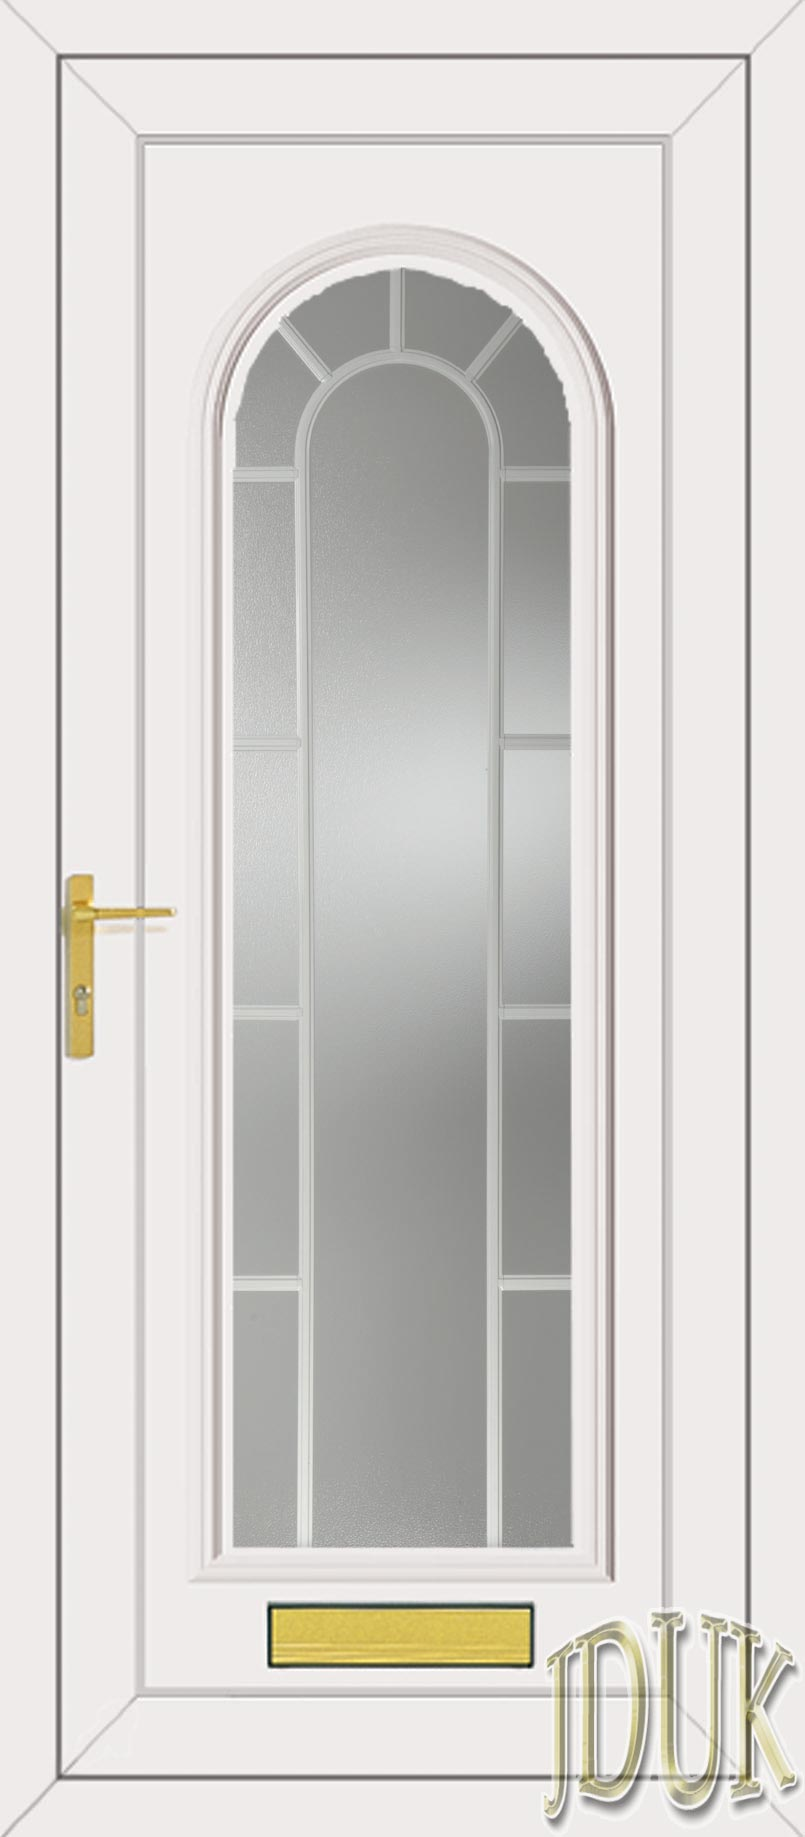 Washington one classic georgian bar upvc front door for Upvc front doors